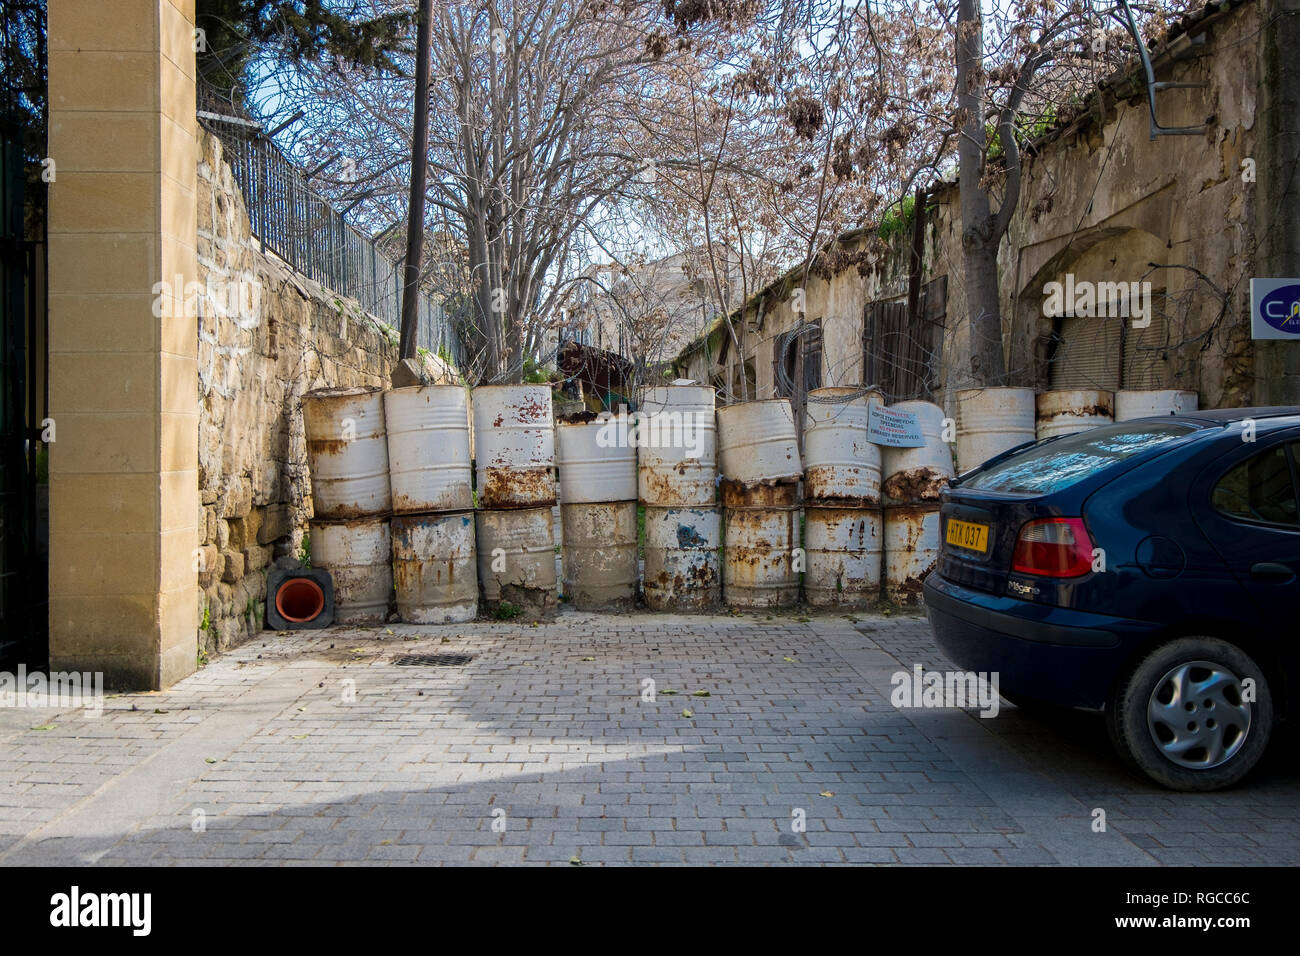 Barrels block passage through the Green Zone that divides Nicosia between the Greek and Turkish sides in Cyprus. - Stock Image